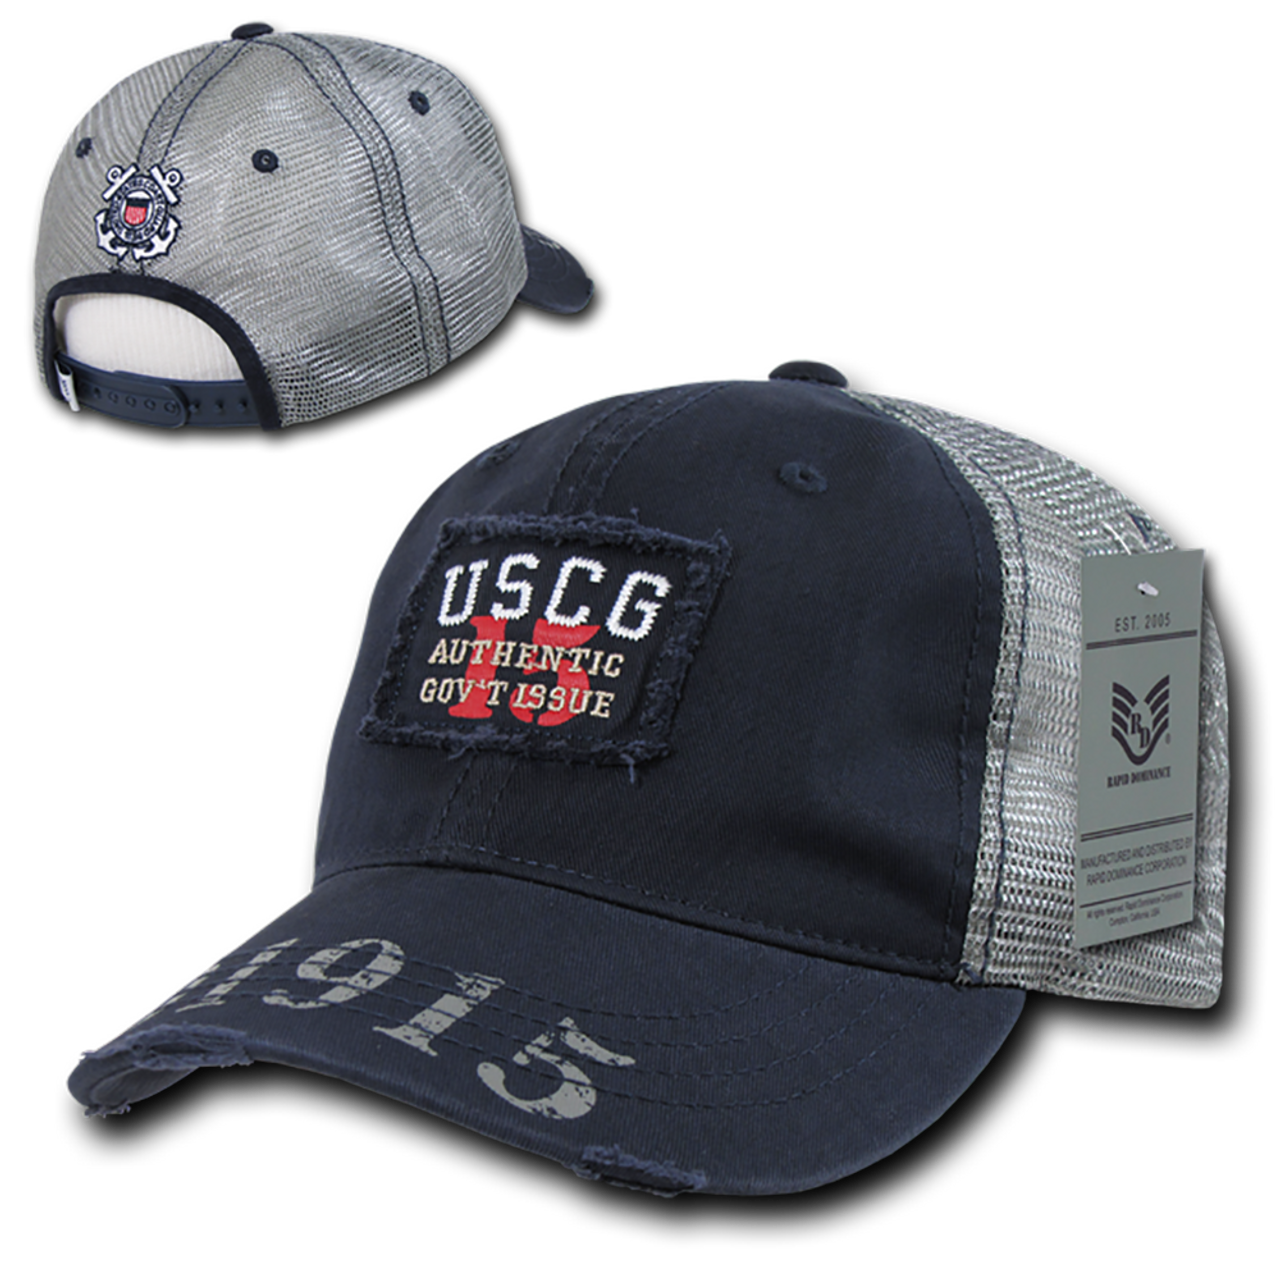 2284816bef8 S85 - Coast Guard Cap USCG Vintage Military Patch Mesh Blue -  USMILITARYHATS.COM